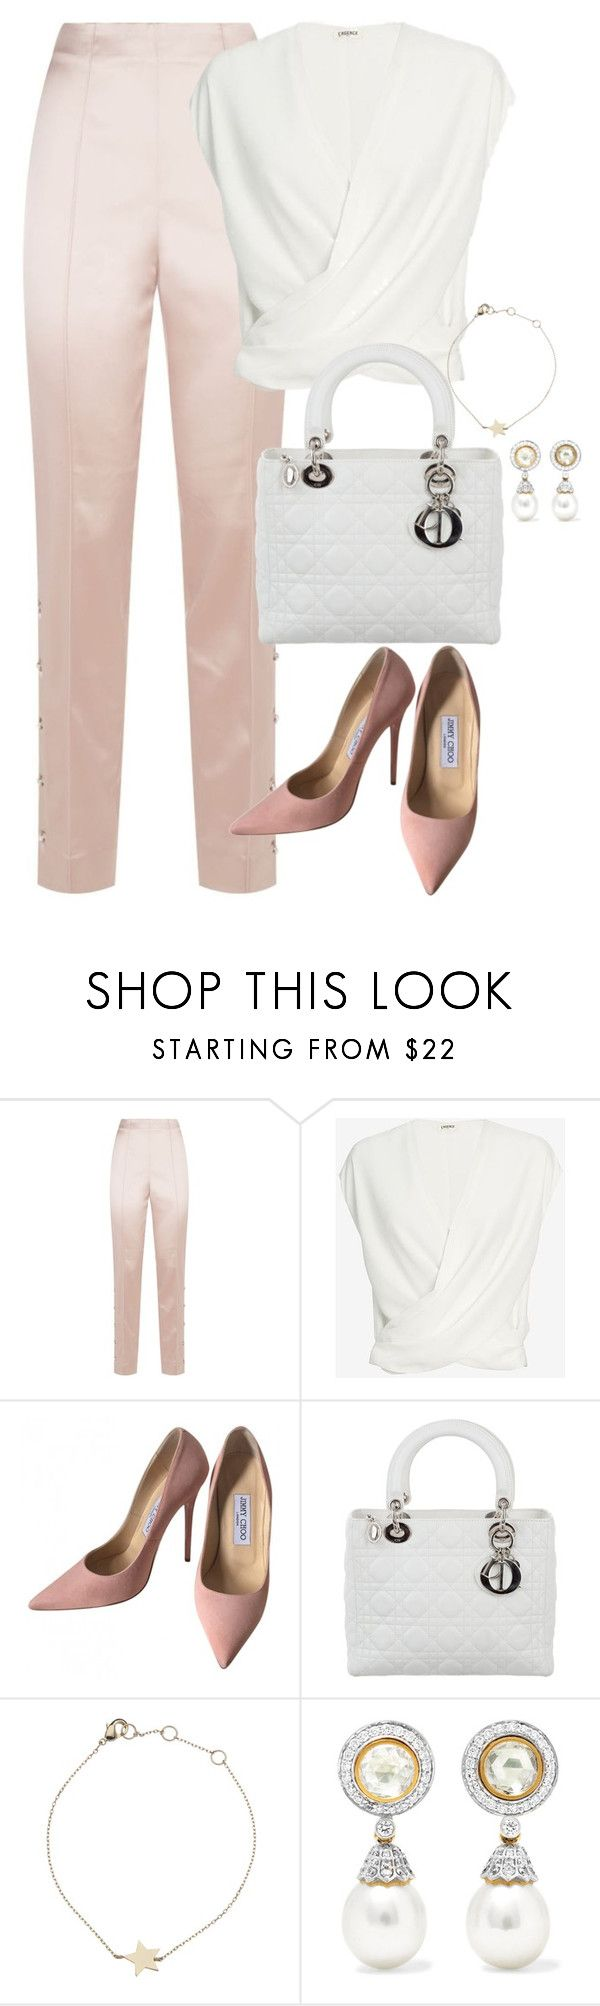 """Unbenannt #2479"" by luckylynn-cdii ❤ liked on Polyvore featuring St. John, L'Agence, Jimmy Choo, Christian Dior, Estella Bartlett and Amrapali"